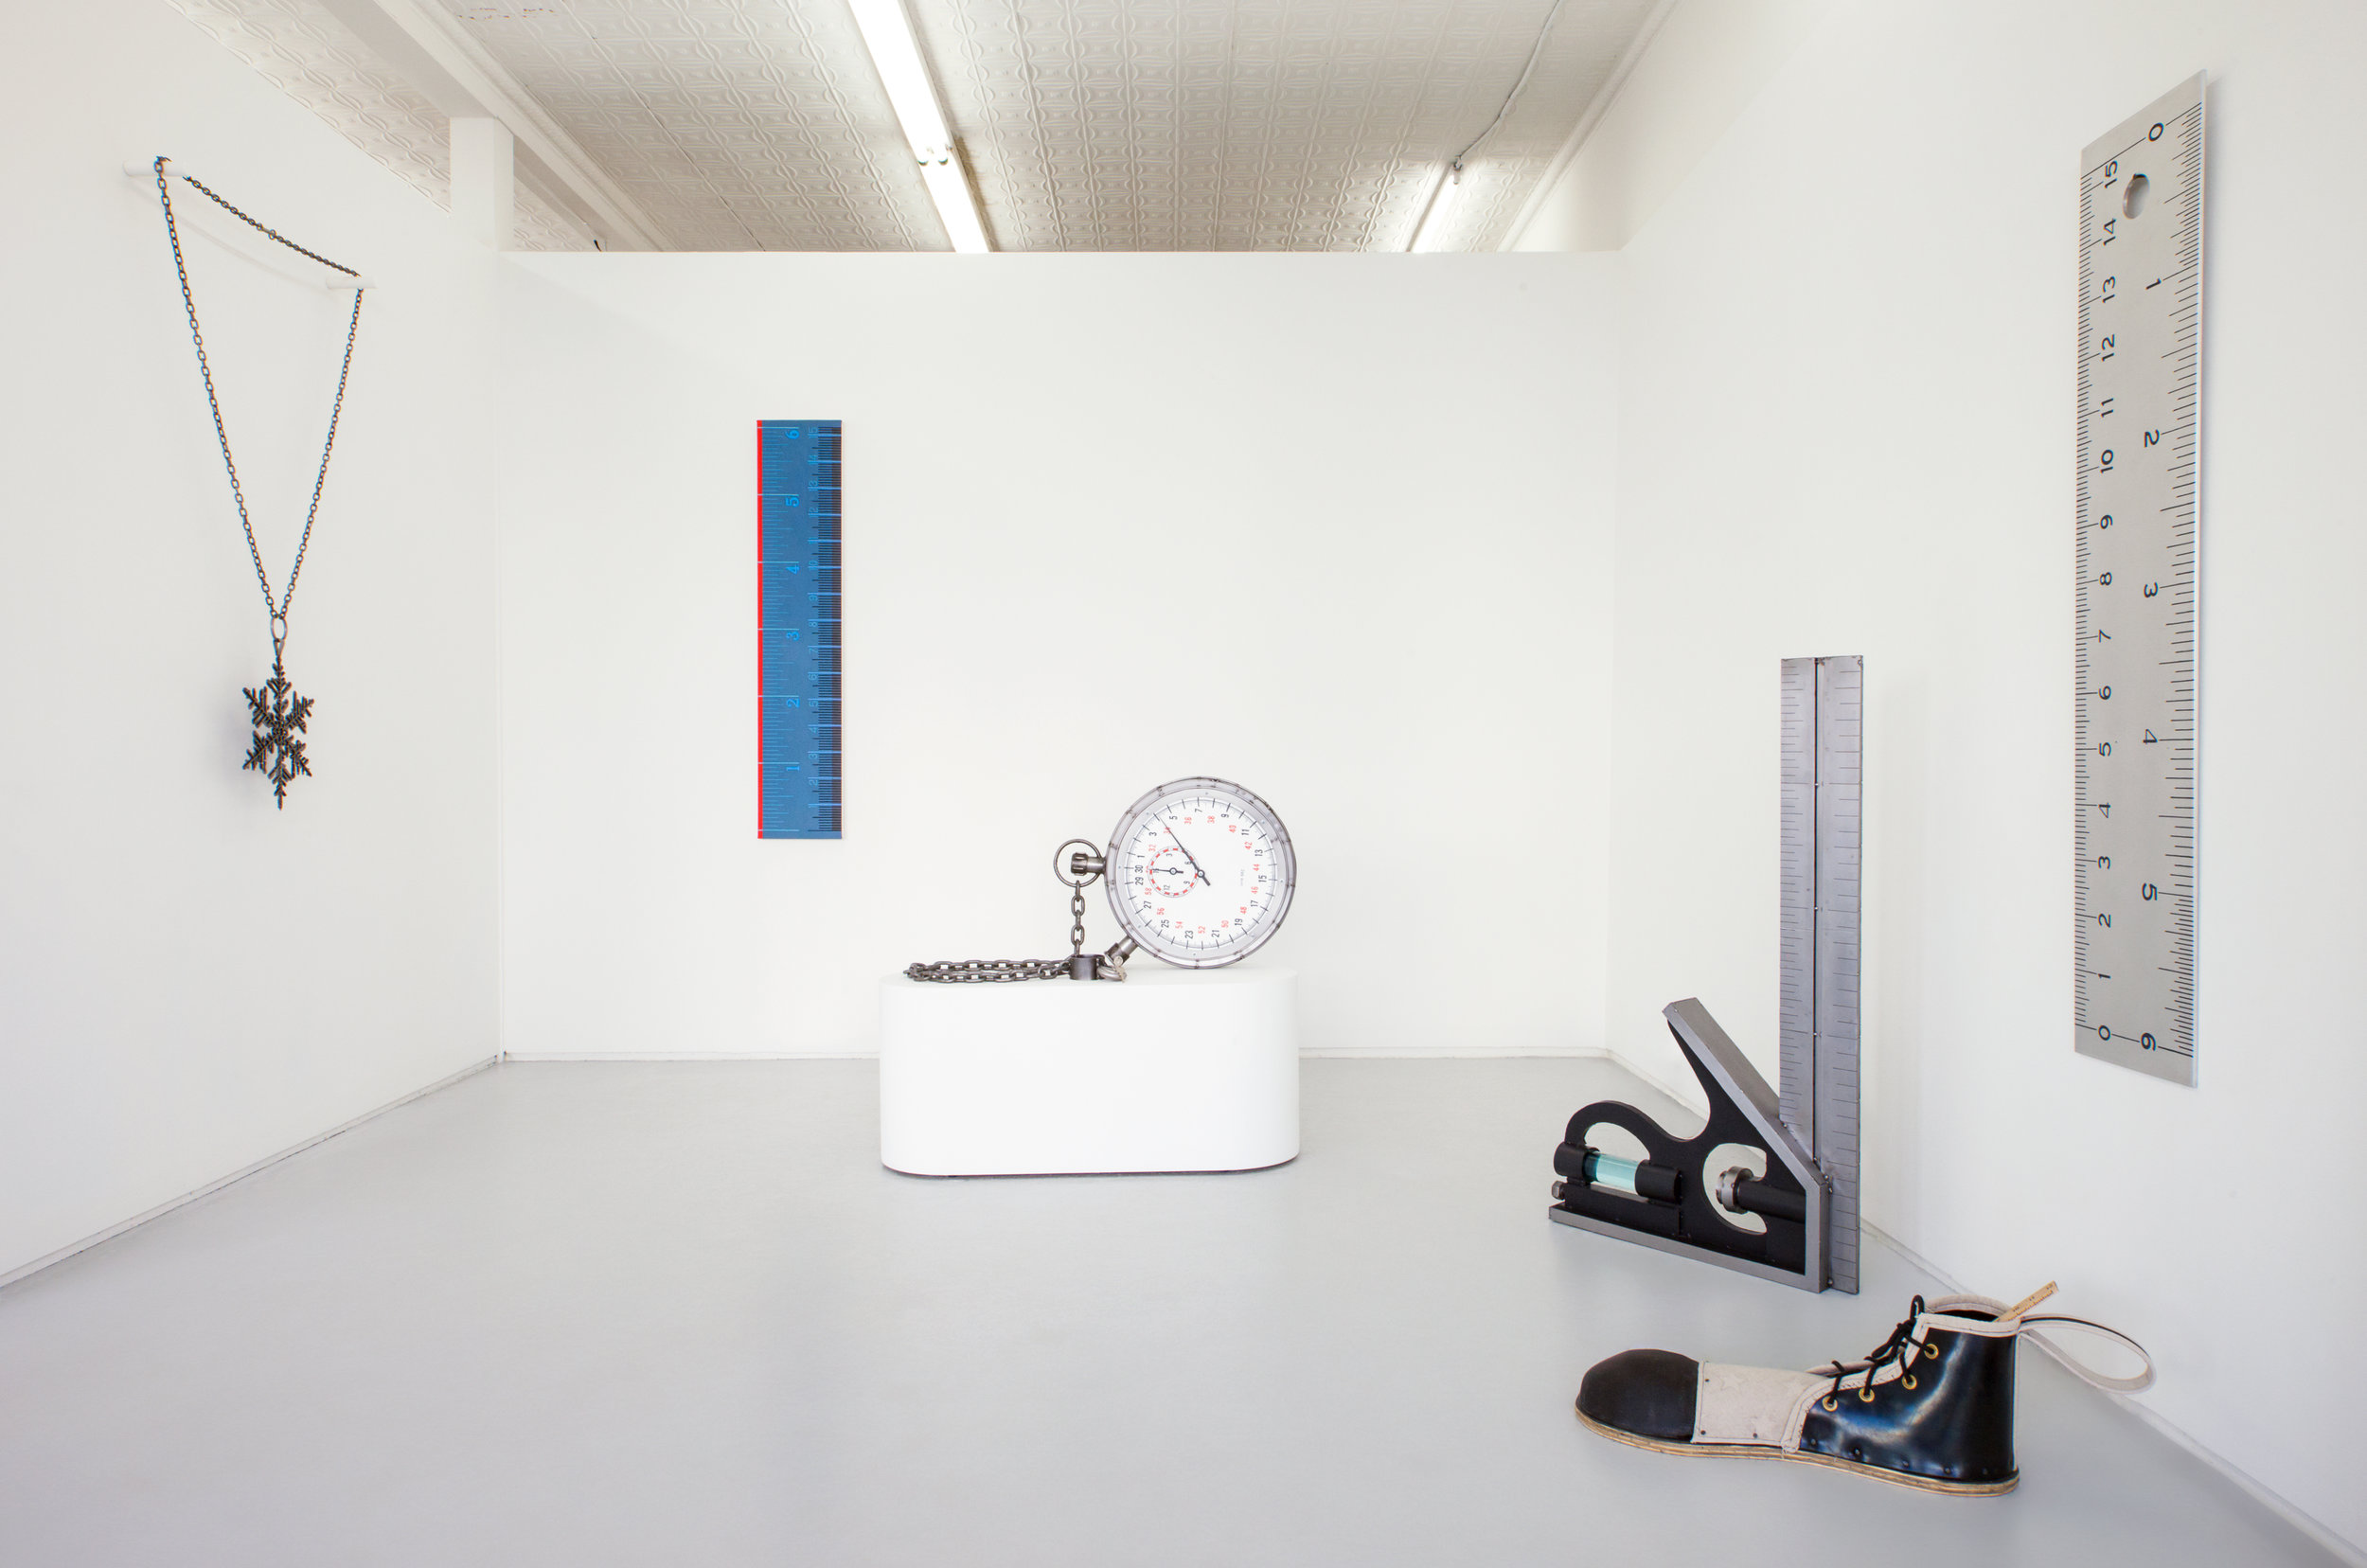 Nick_Doyle-Soft_Arrest-Installation_View-Mrs-01.jpg